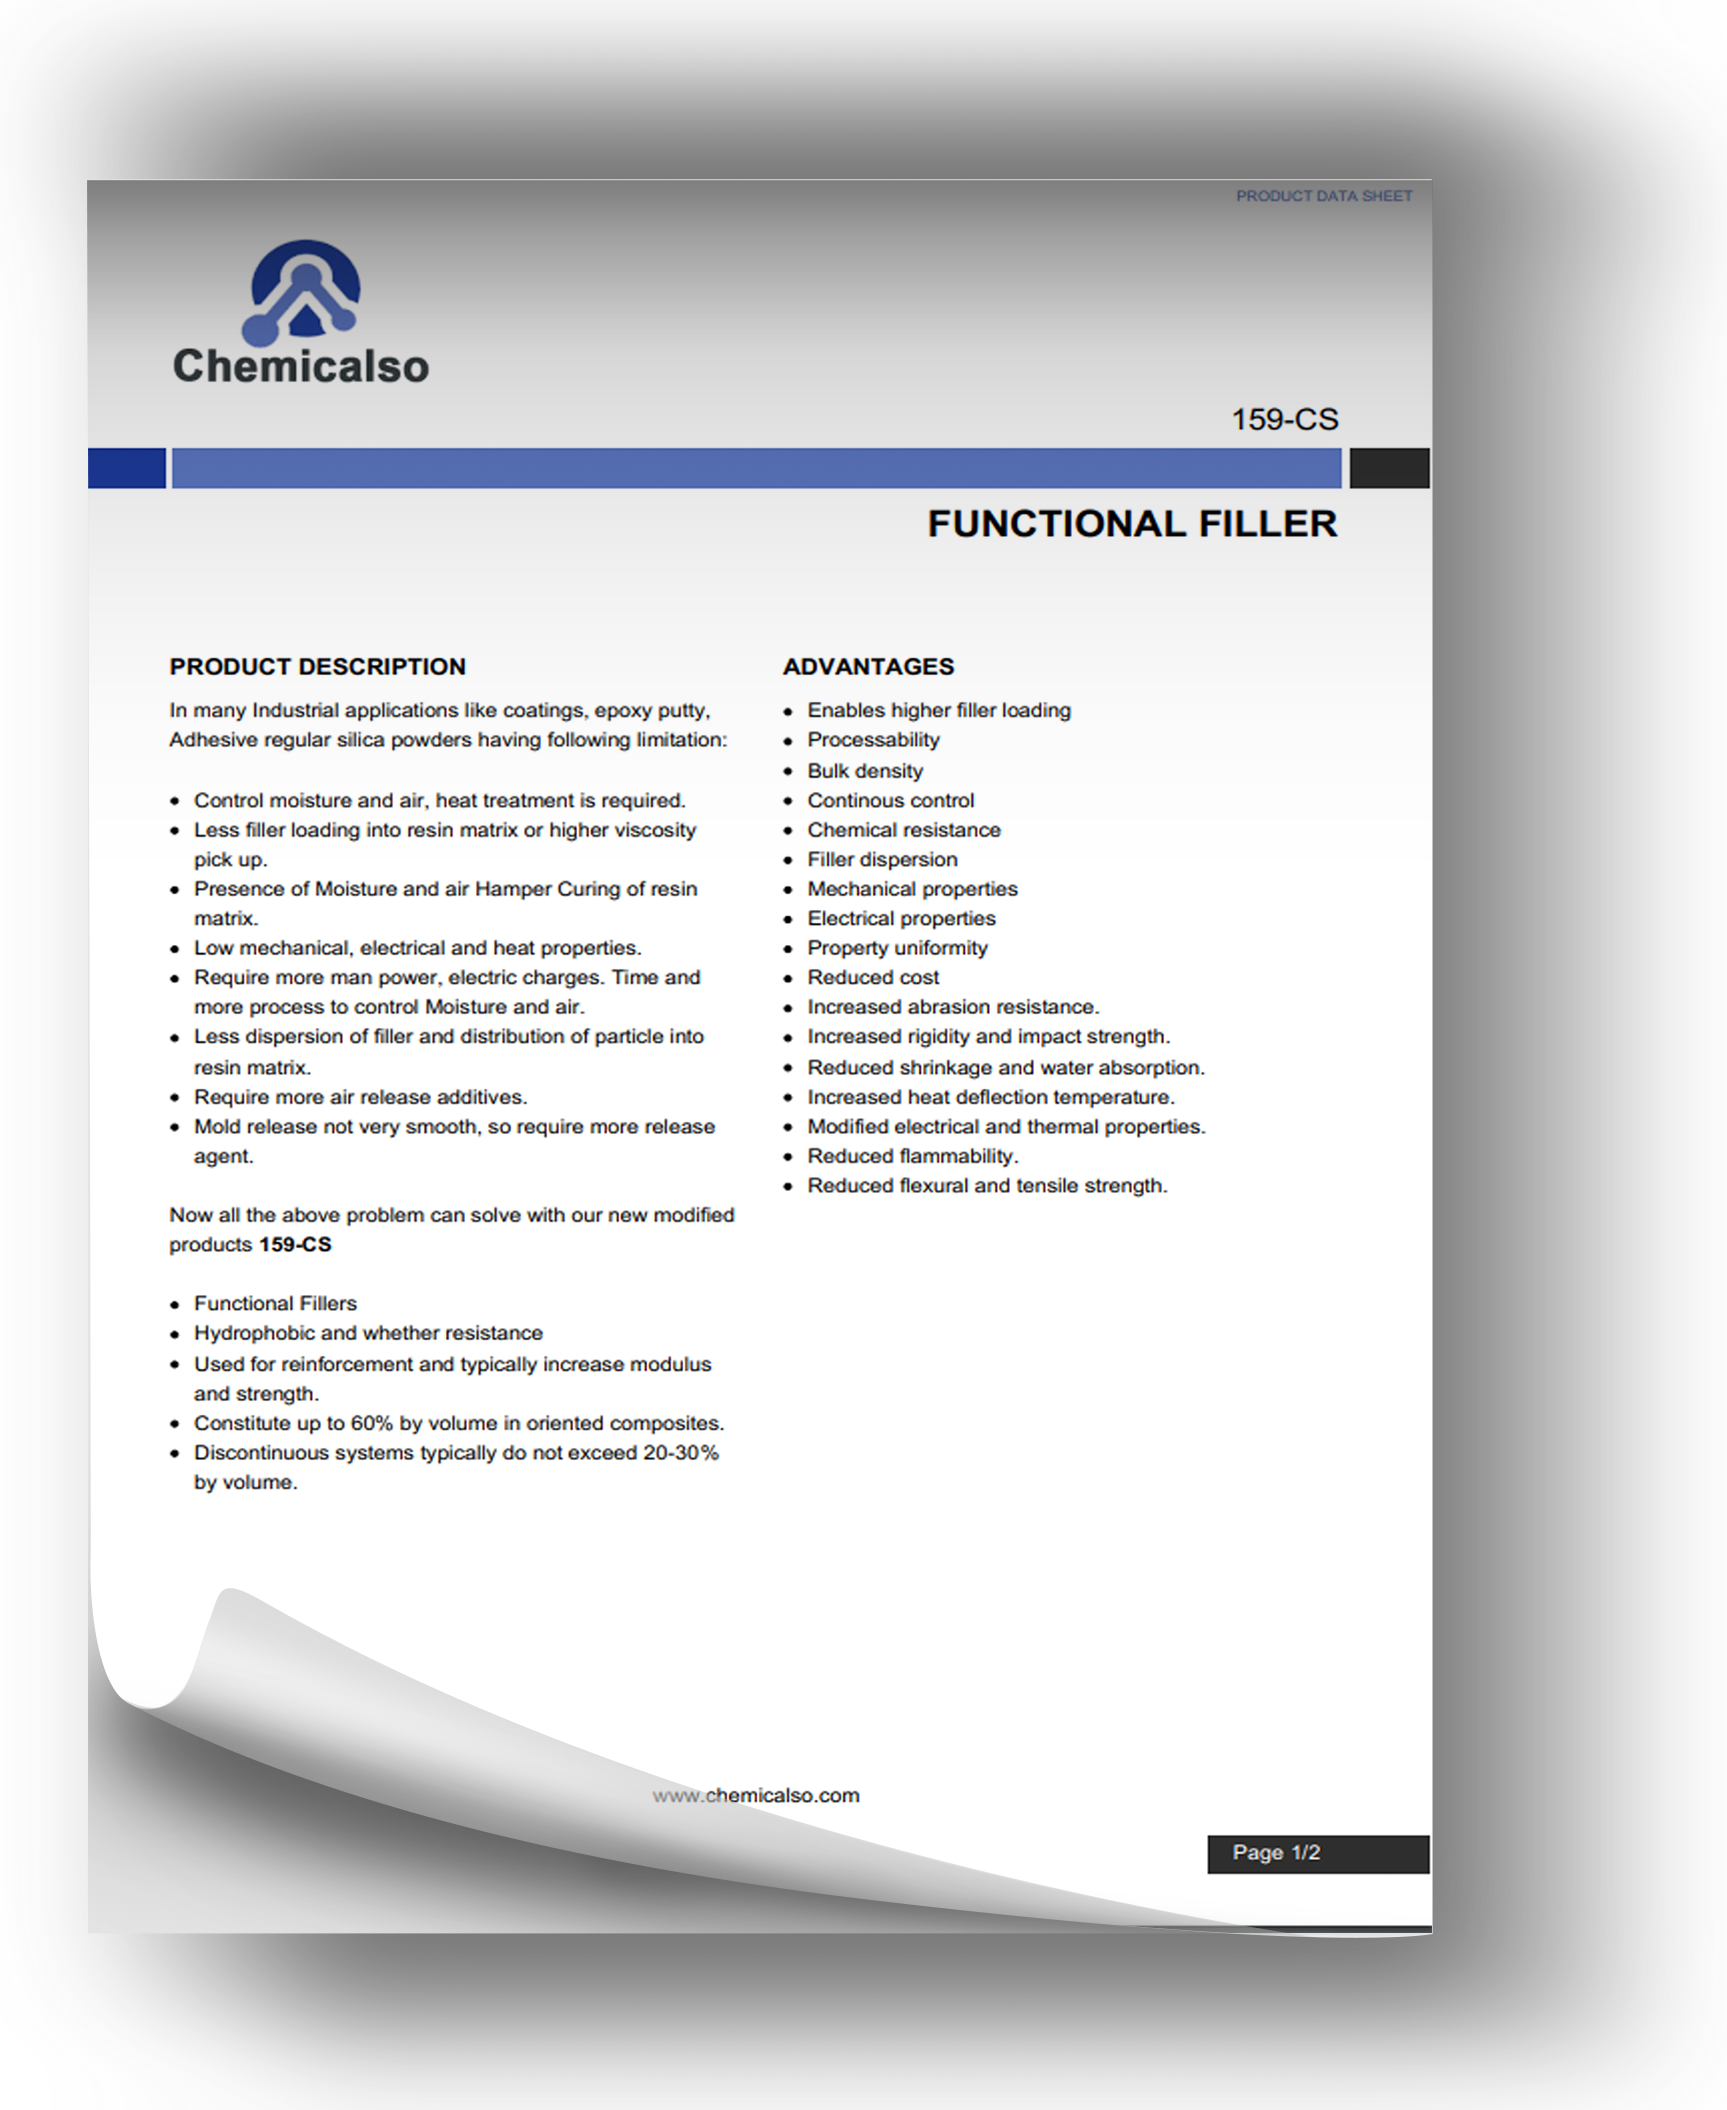 Chemical Filler Datasheet Template Professional And Attractive Product Data Sheet Template Is The Key Factor For Powerful Data Sheets Get Started With This Tem